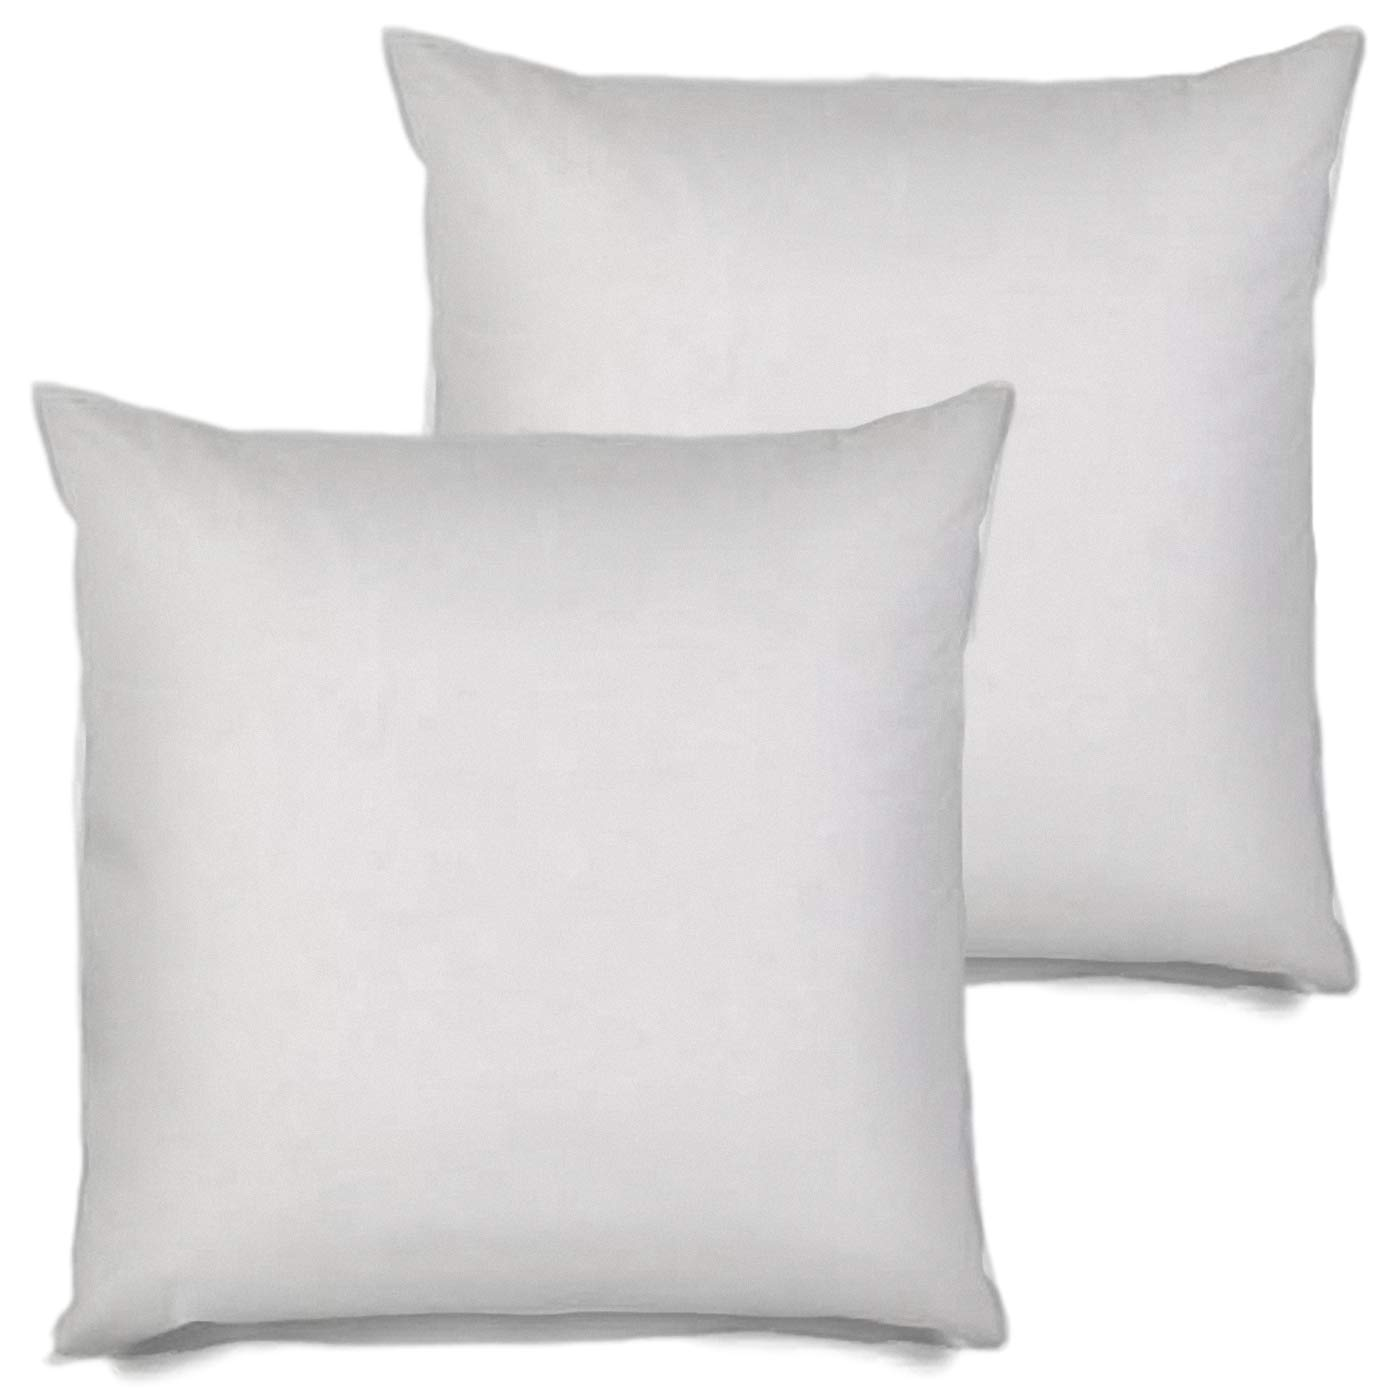 MSD 2 Pack Pillow Insert 28x28 Hypoallergenic Square Form Sham Stuffer Standard White Polyester Decorative Euro Throw Pillow Inserts for Sofa Bed - Made in USA (Set of 2) - Machine Washable and Dry